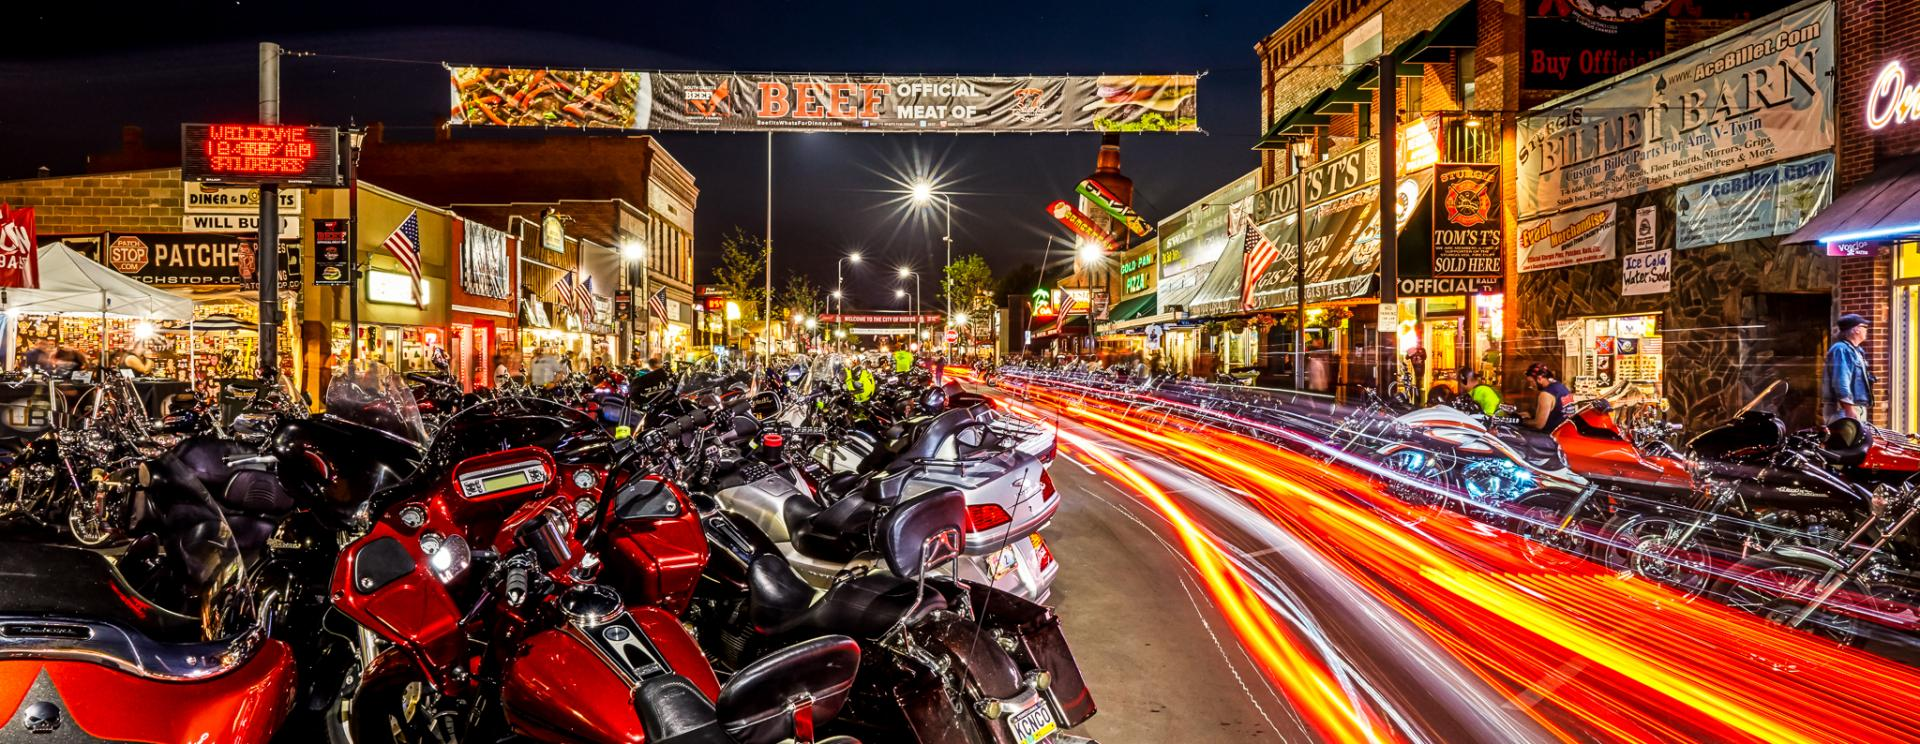 79th Annual Sturgis Motorcycle Rally